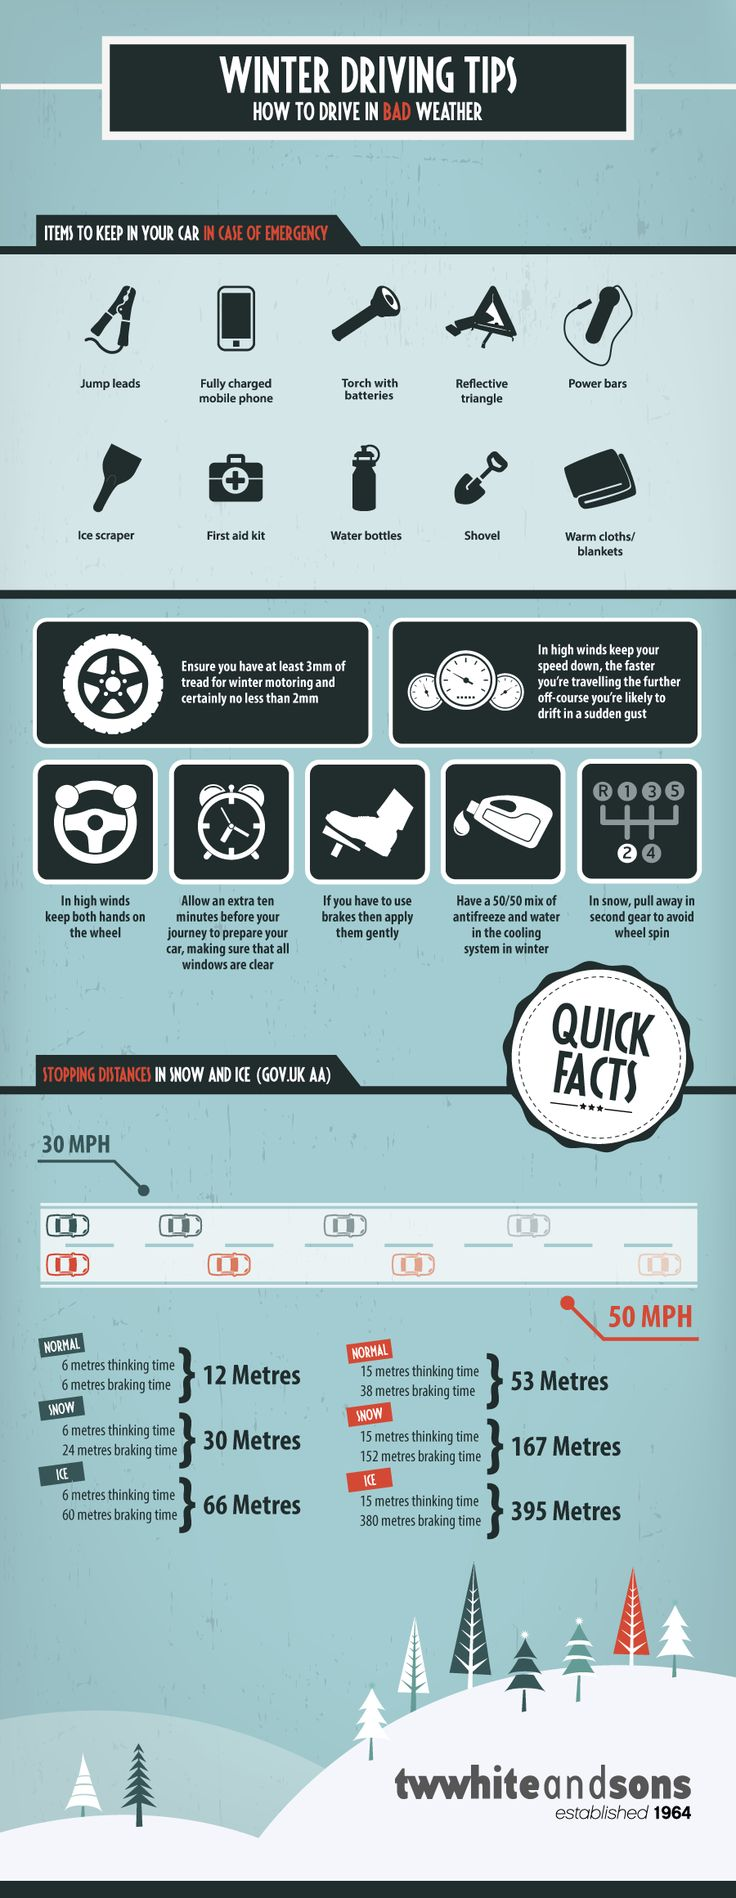 Winter Driving Tips Infographic WINTER DRIVING TIPS http://www.mycargossip.com/blog.php?pid=225&name=always-be-prepared-surviving-winter-driving